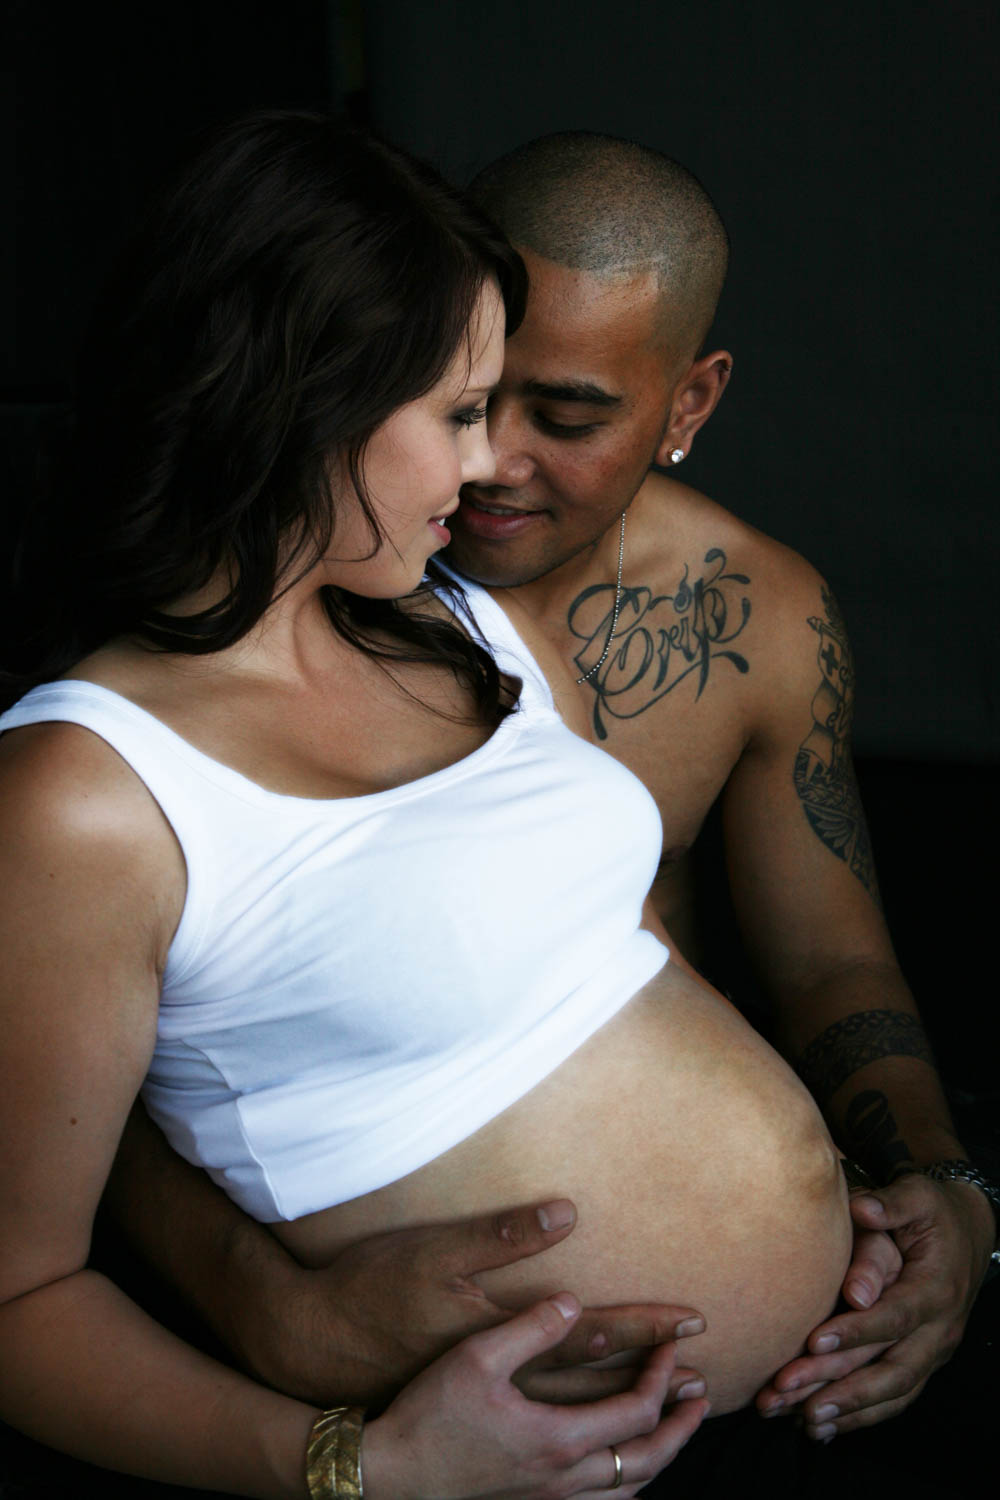 Pregnancy_Maternity_Photoshoot_Auckland_11550_8605.jpg